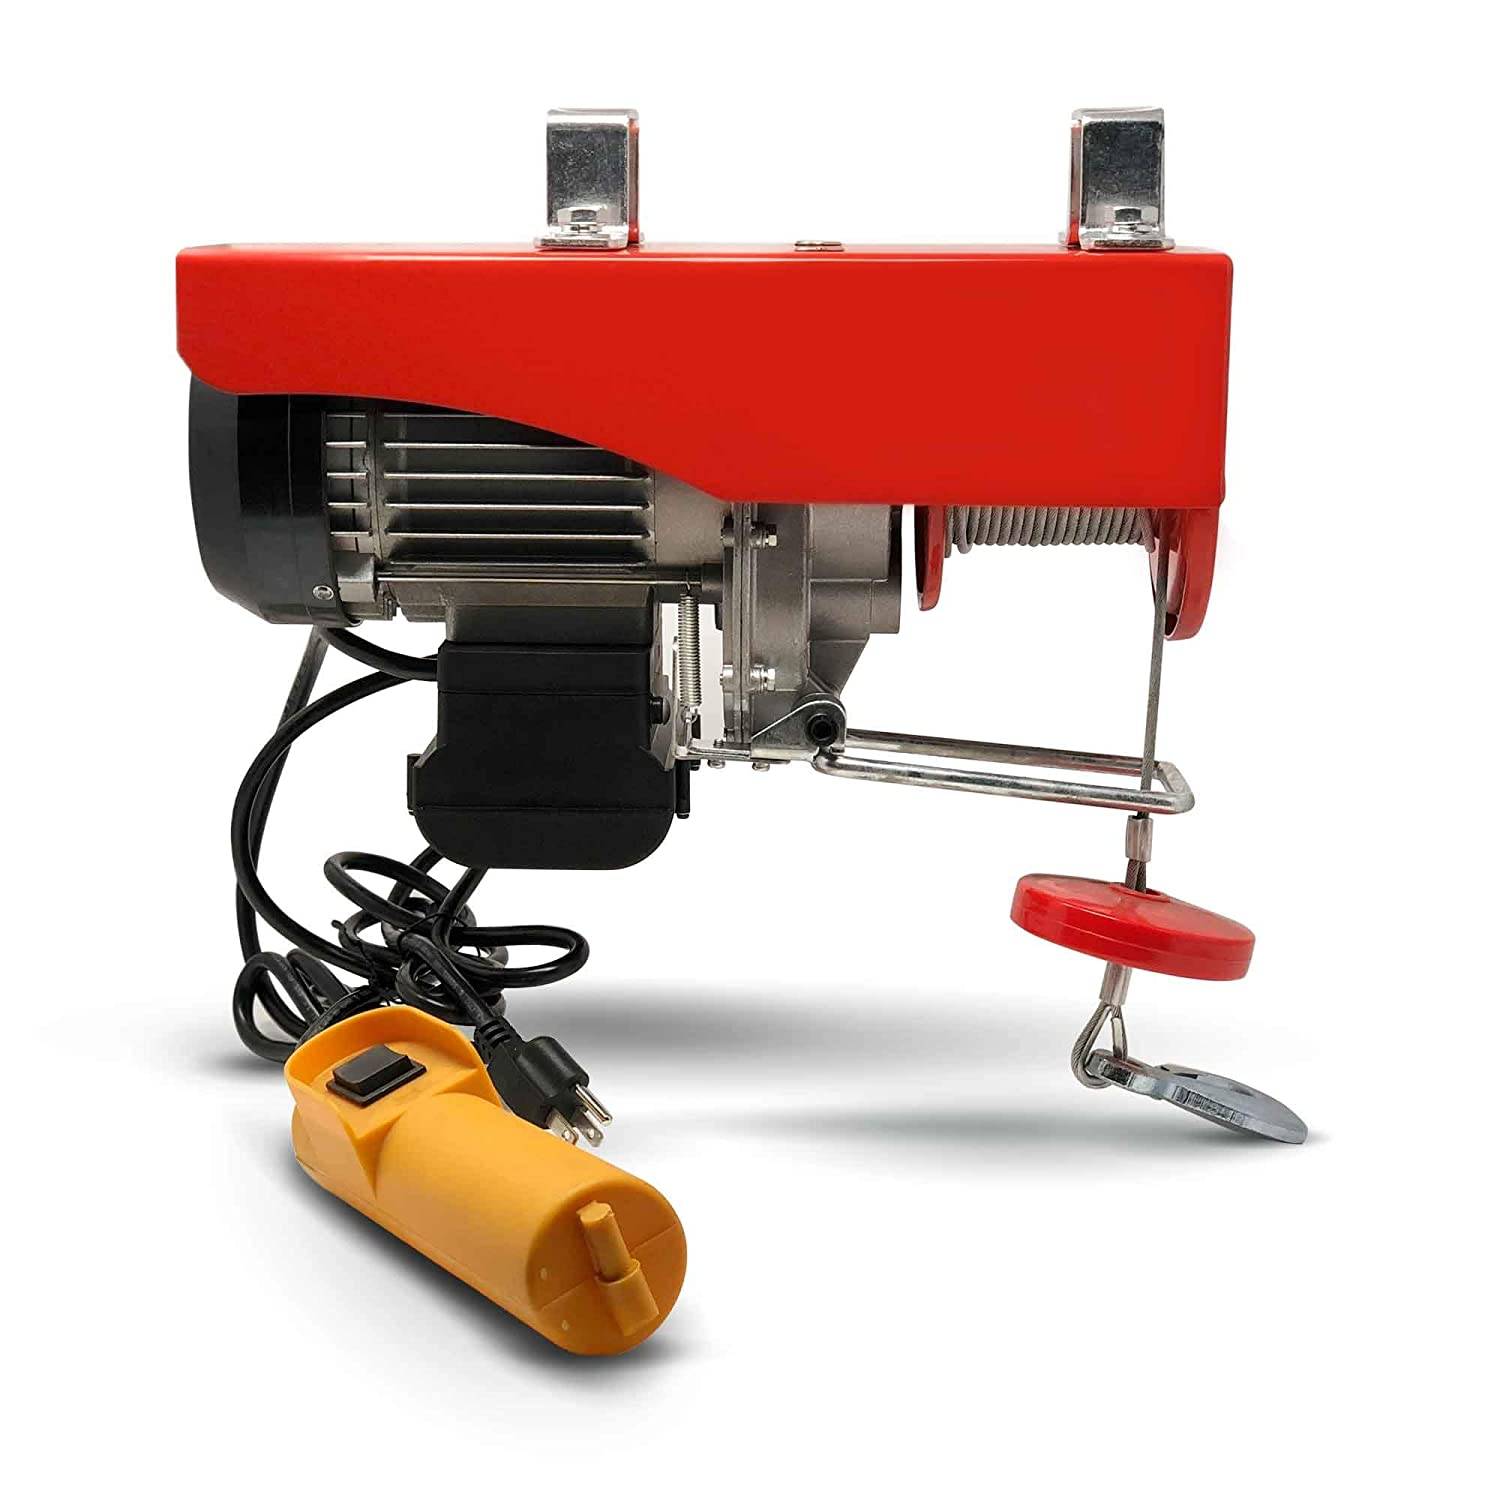 880 Lb Overhead Electric Hoist Crane Lift Garage Winch w/ wired remote 110V- Five Oceans (BC 3781)